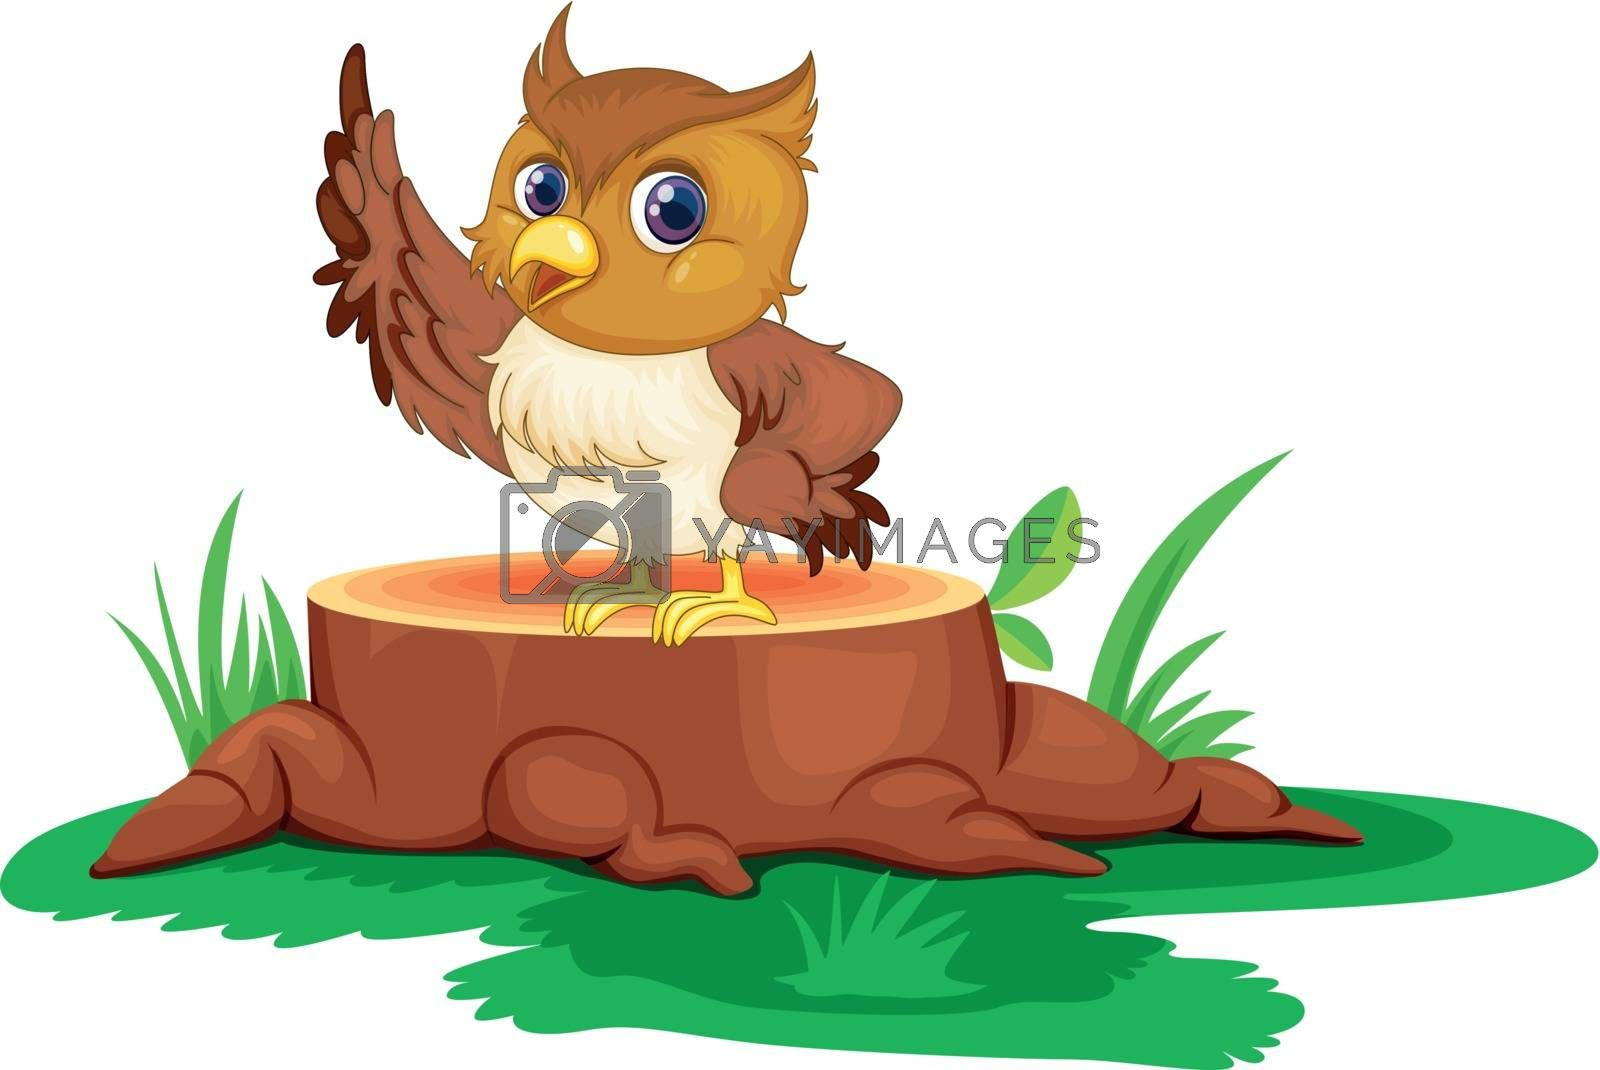 Illustration of an owl on a stump on a white background